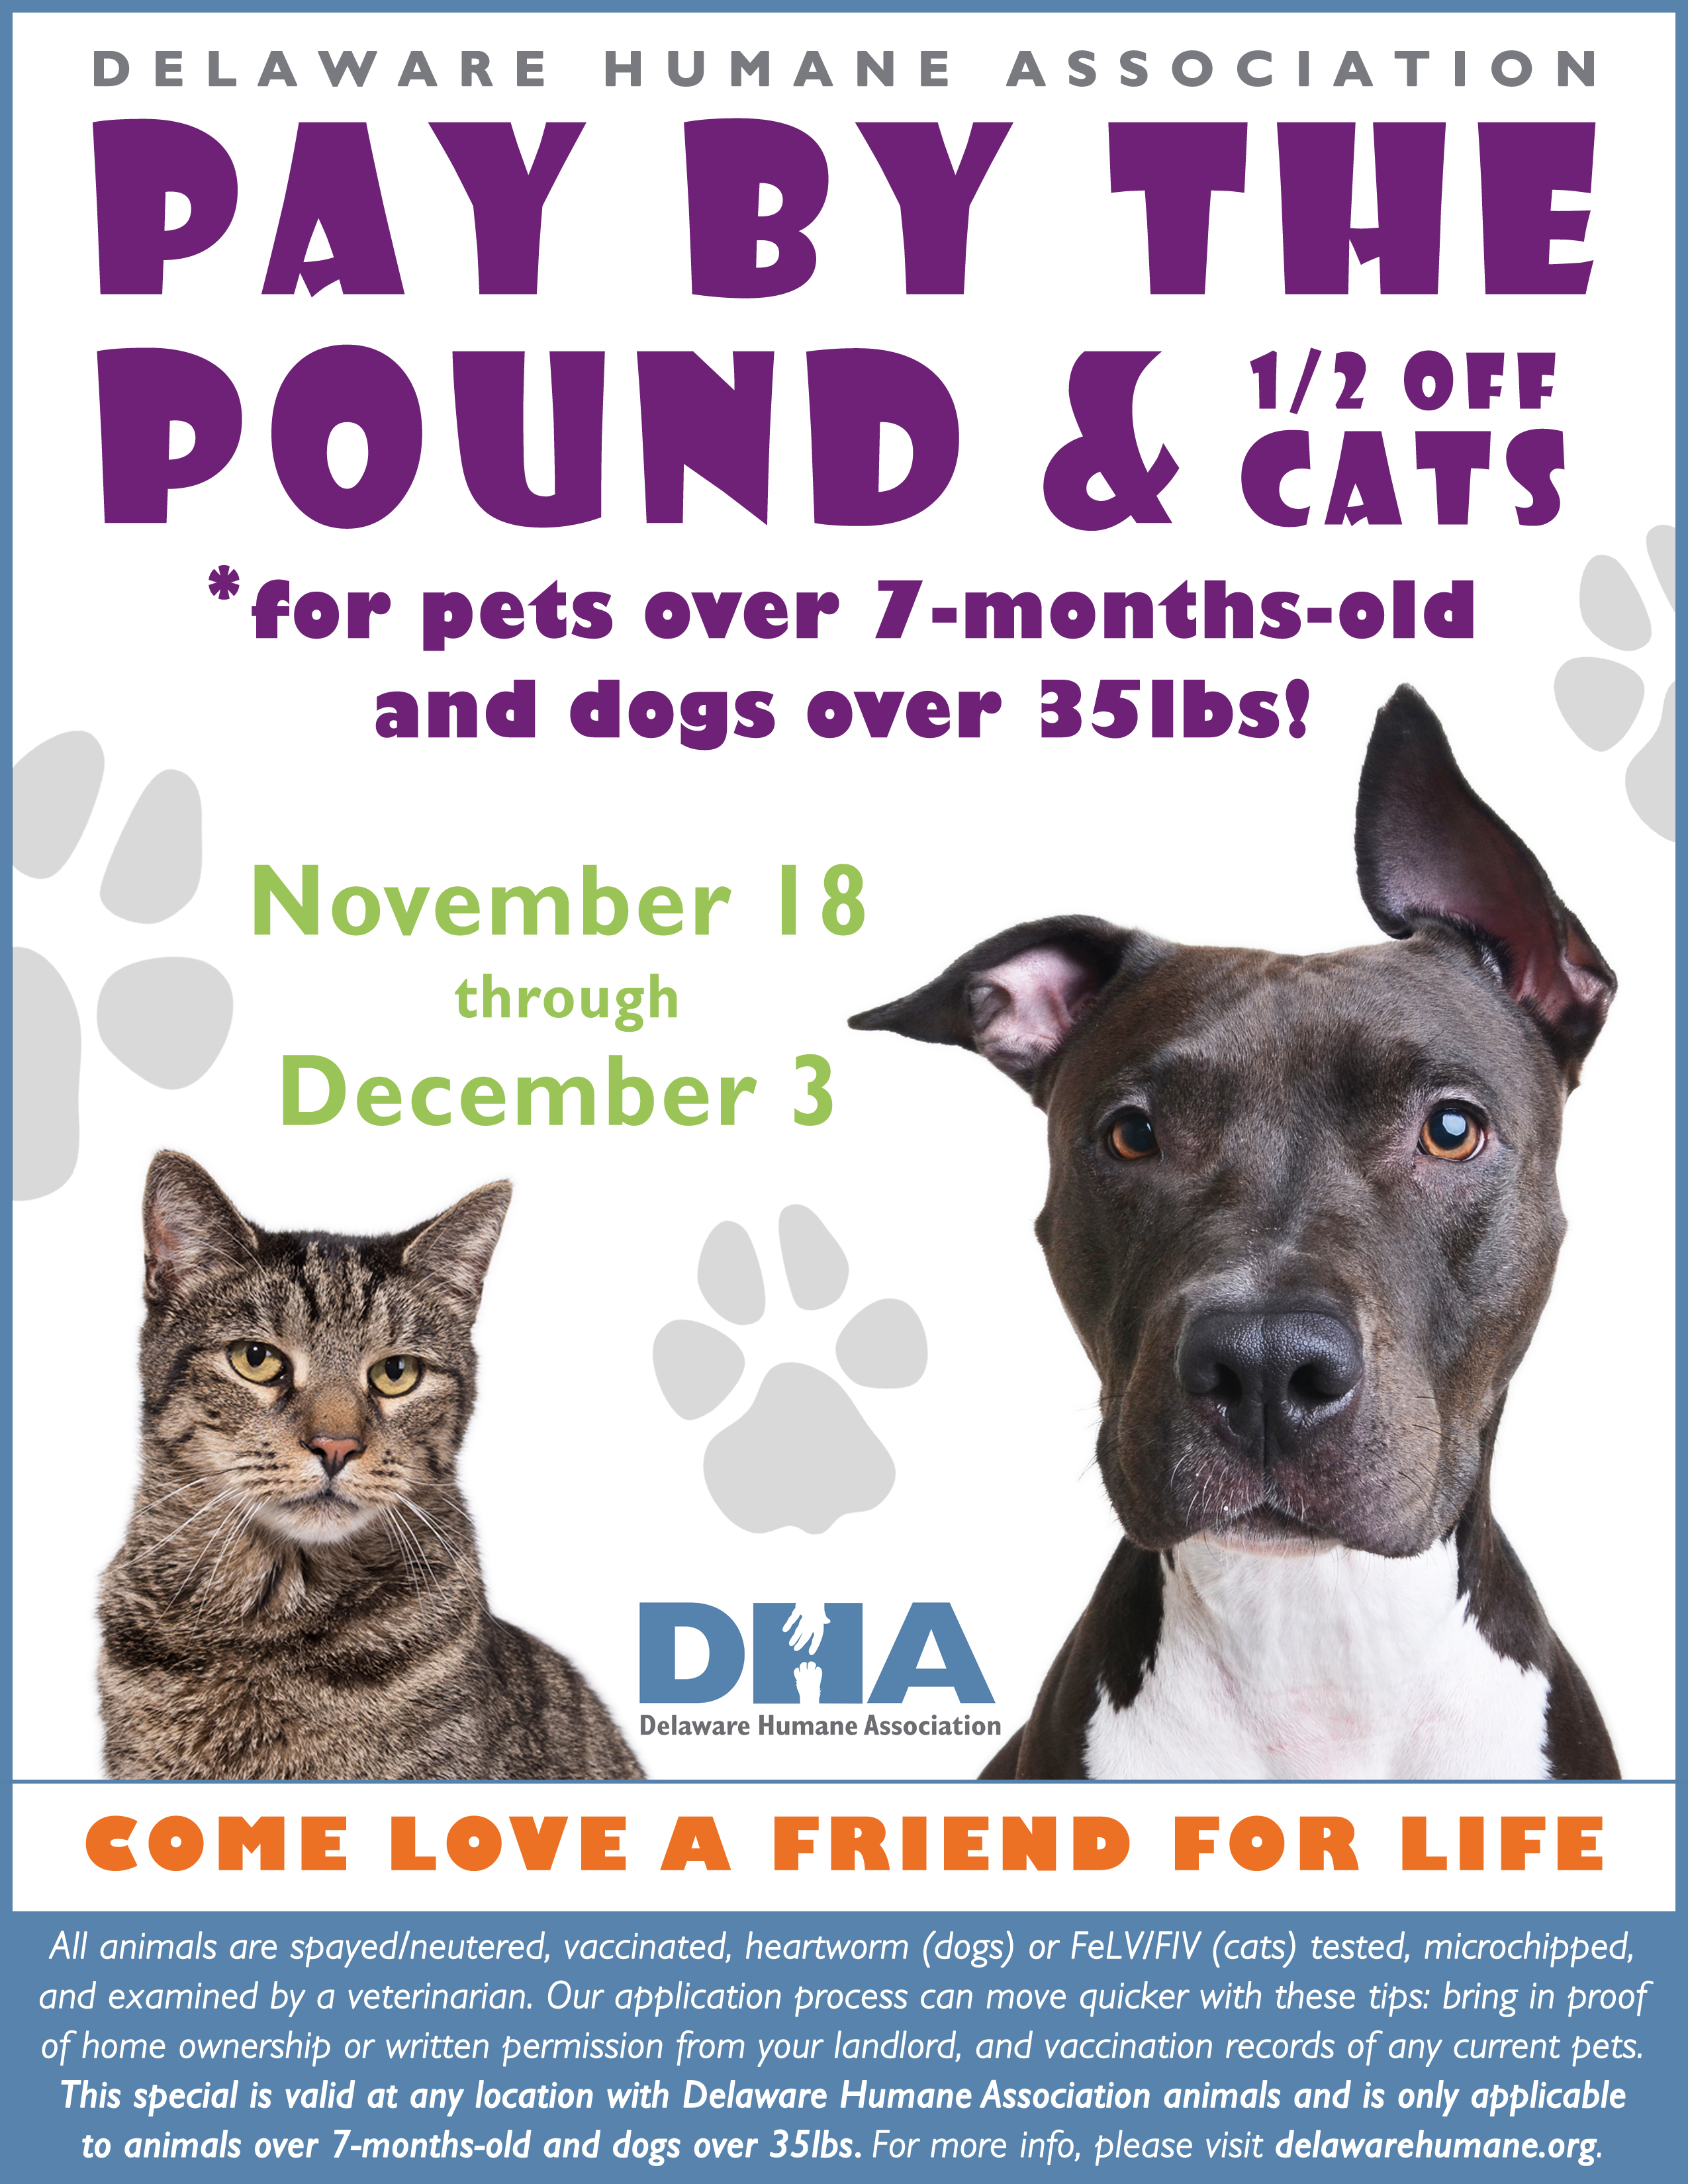 Pay By the Pound & Half f Cats Adoption Special Delaware